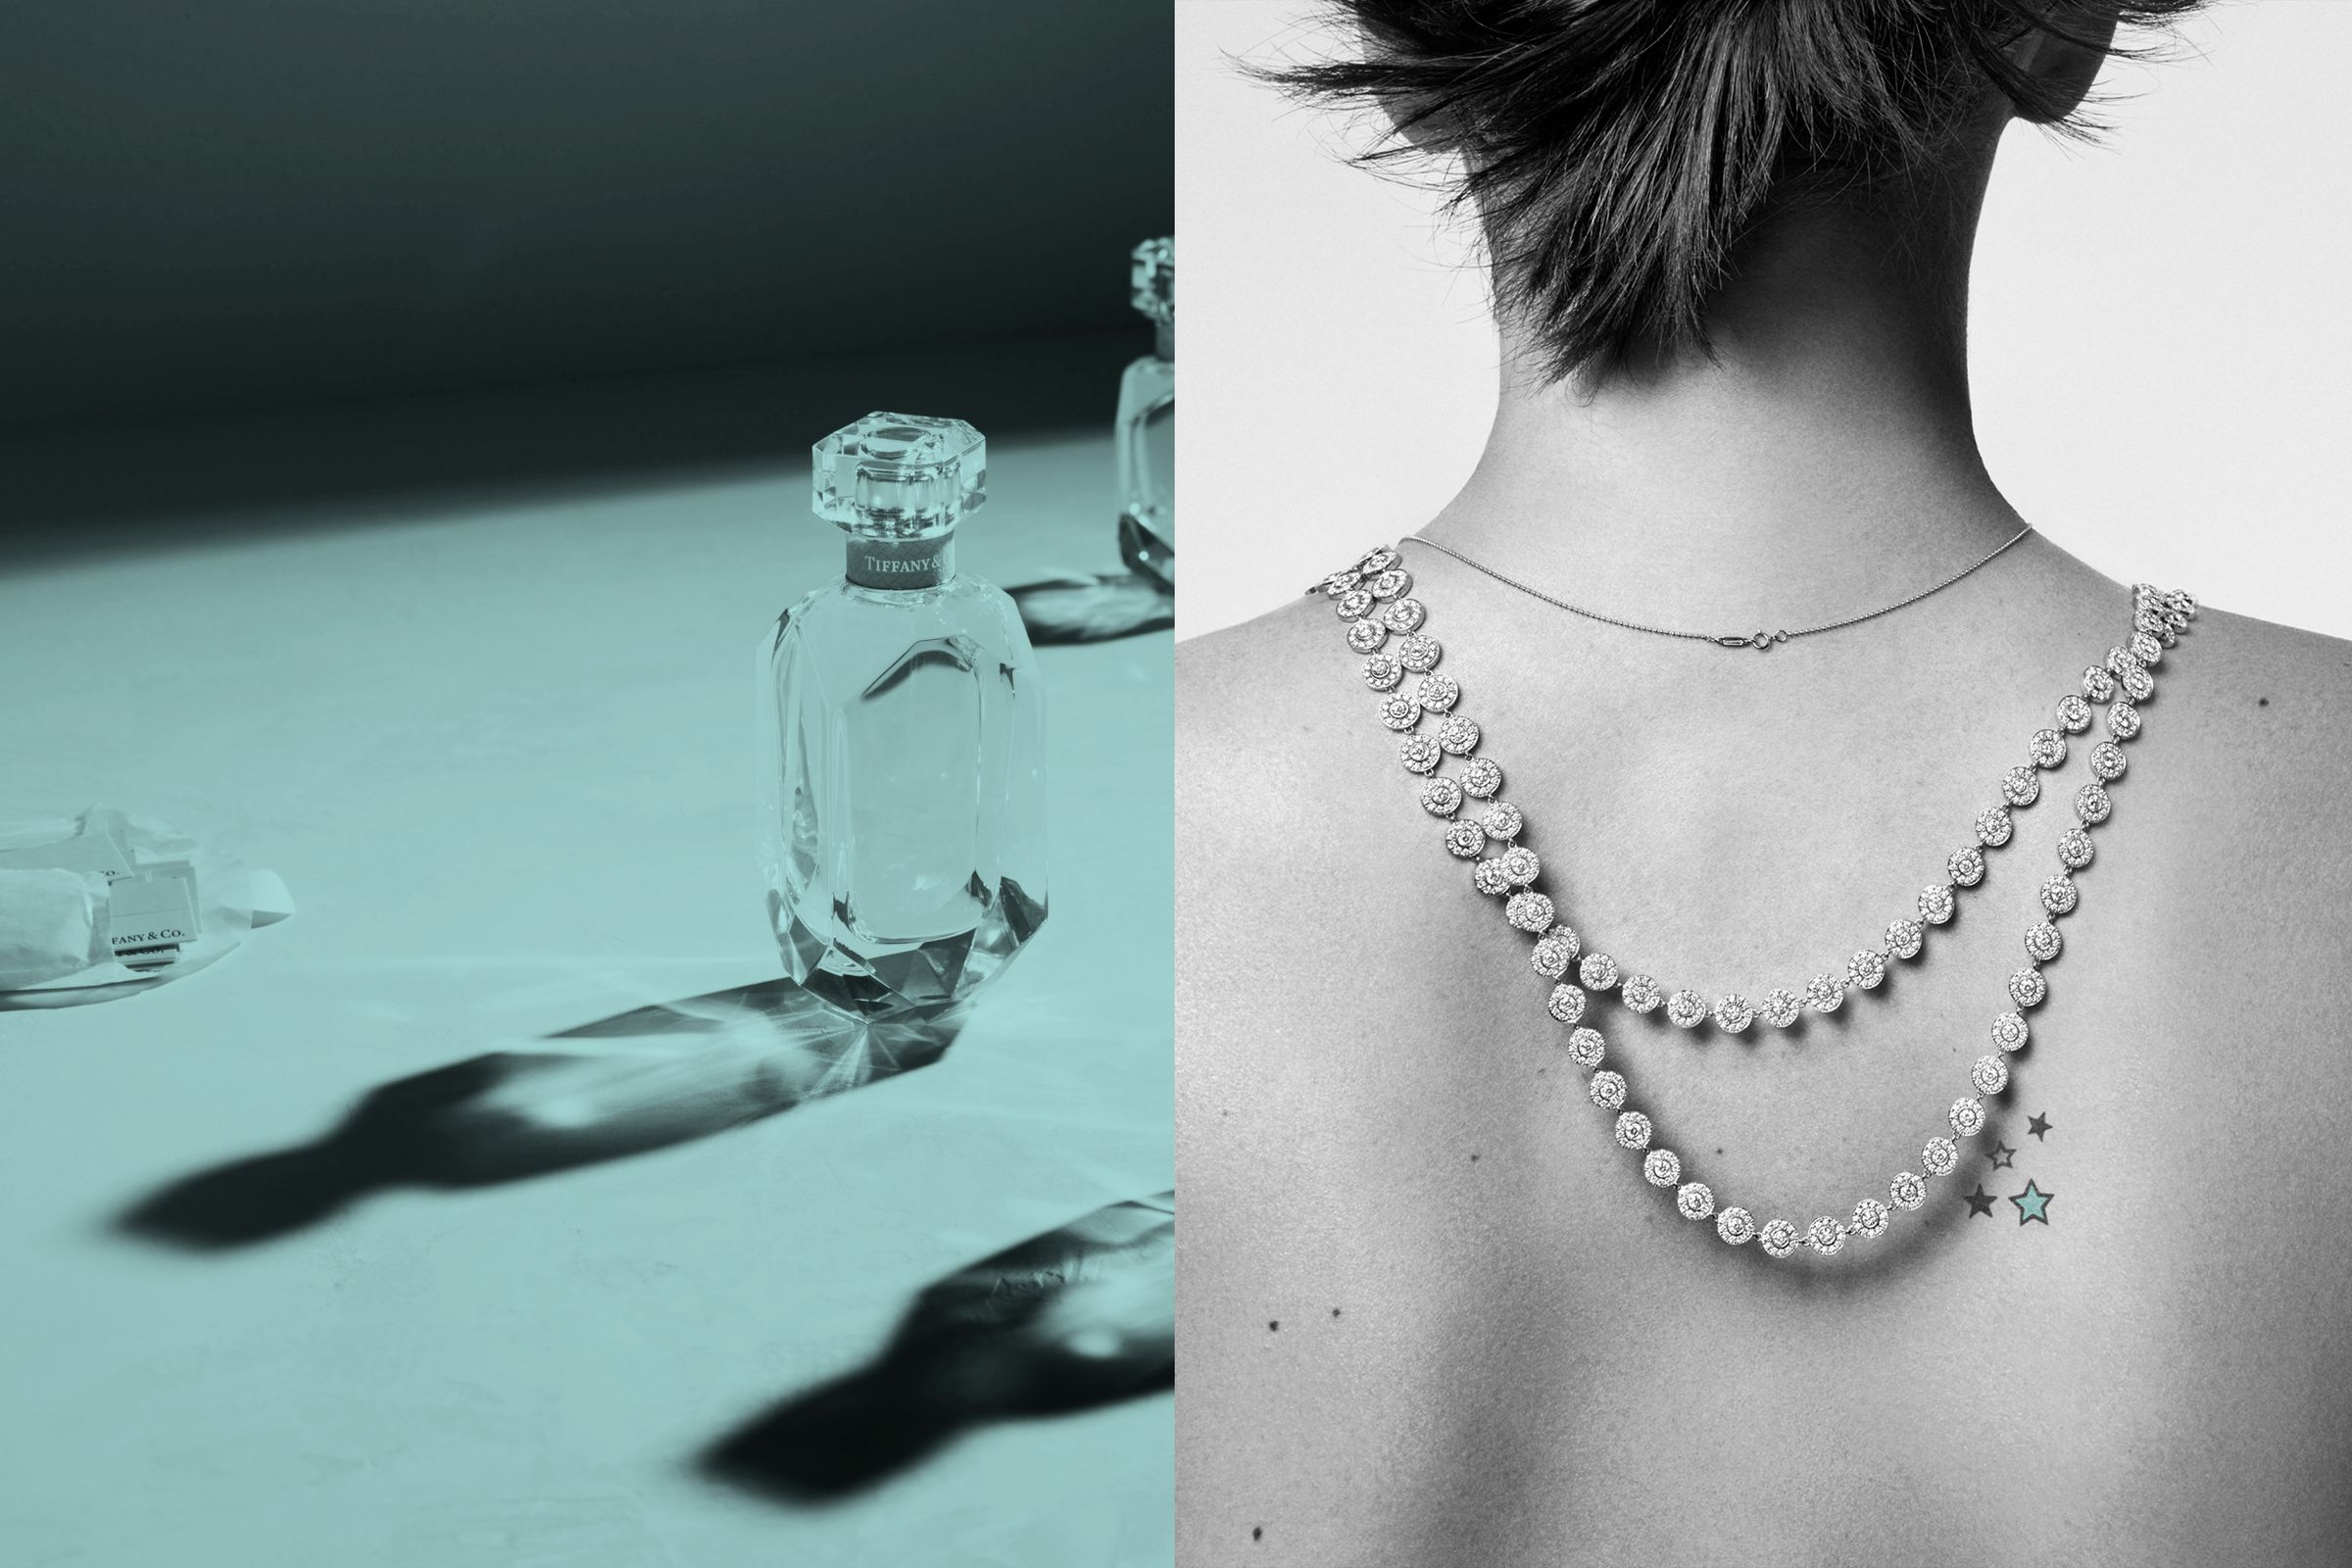 This is Tiffany magazine Issue 6 fragrance story art direction